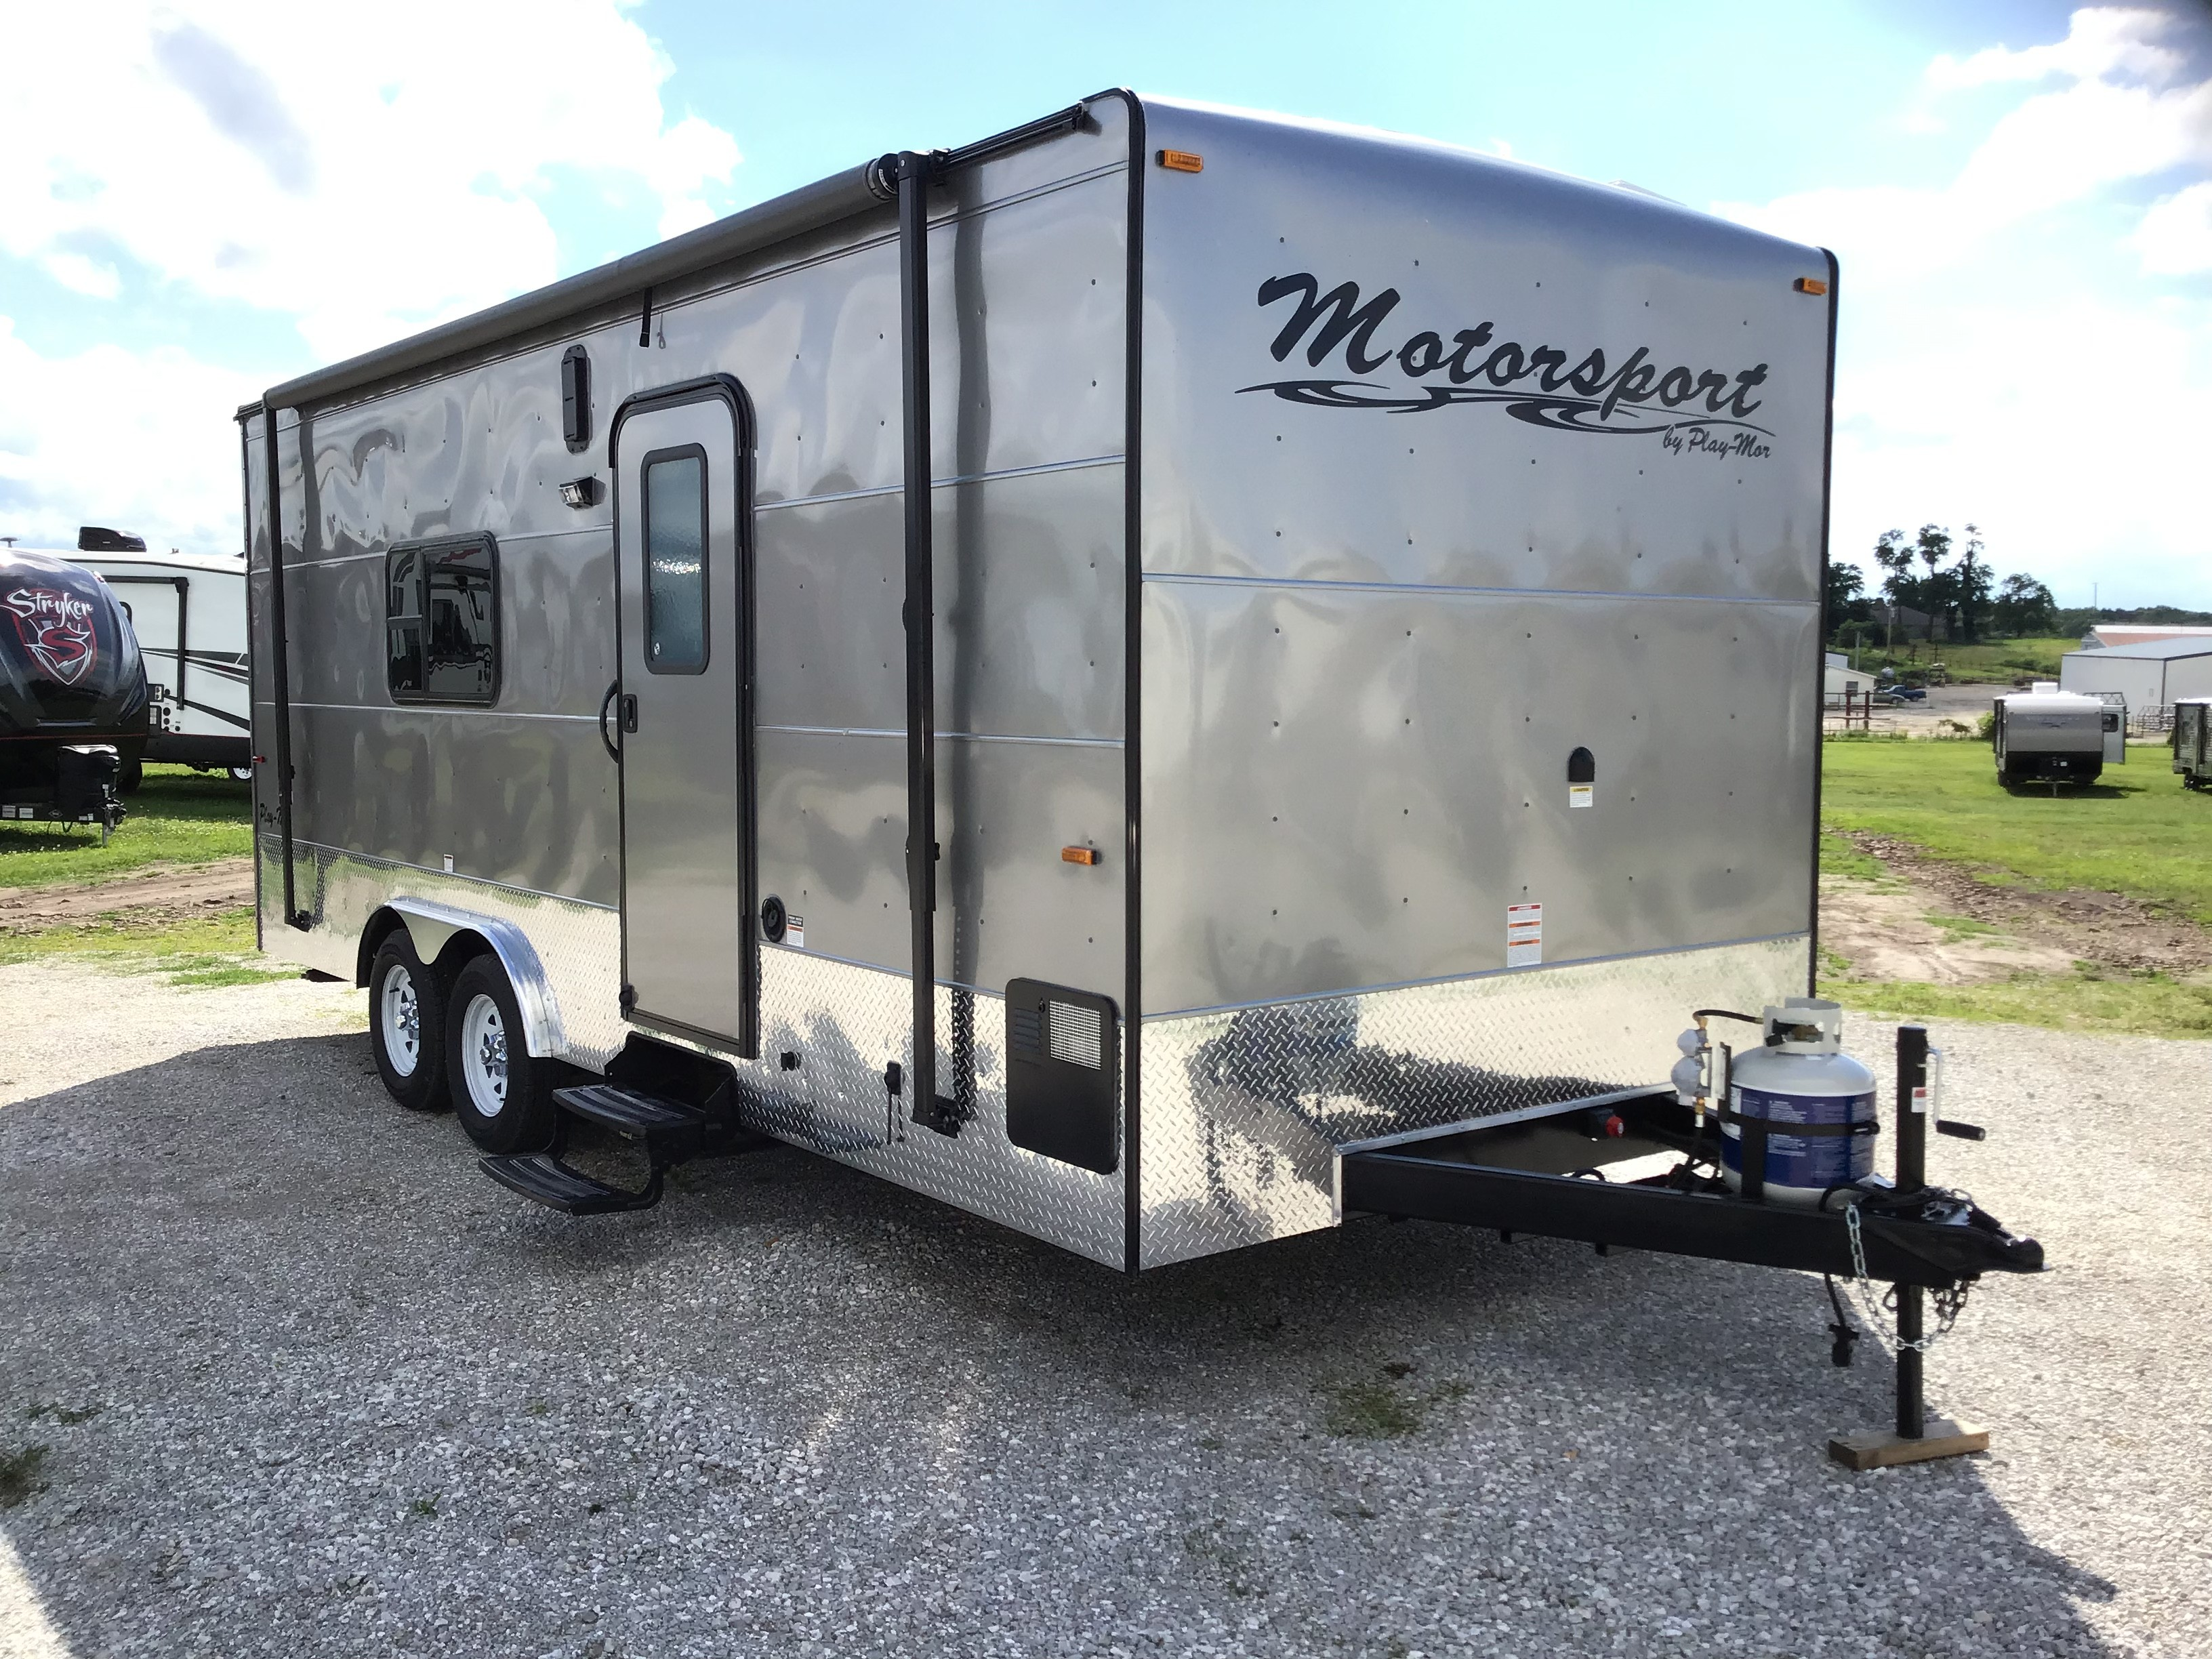 New 2020 Play-Mor Motorsport 8207P in Carthage, MO